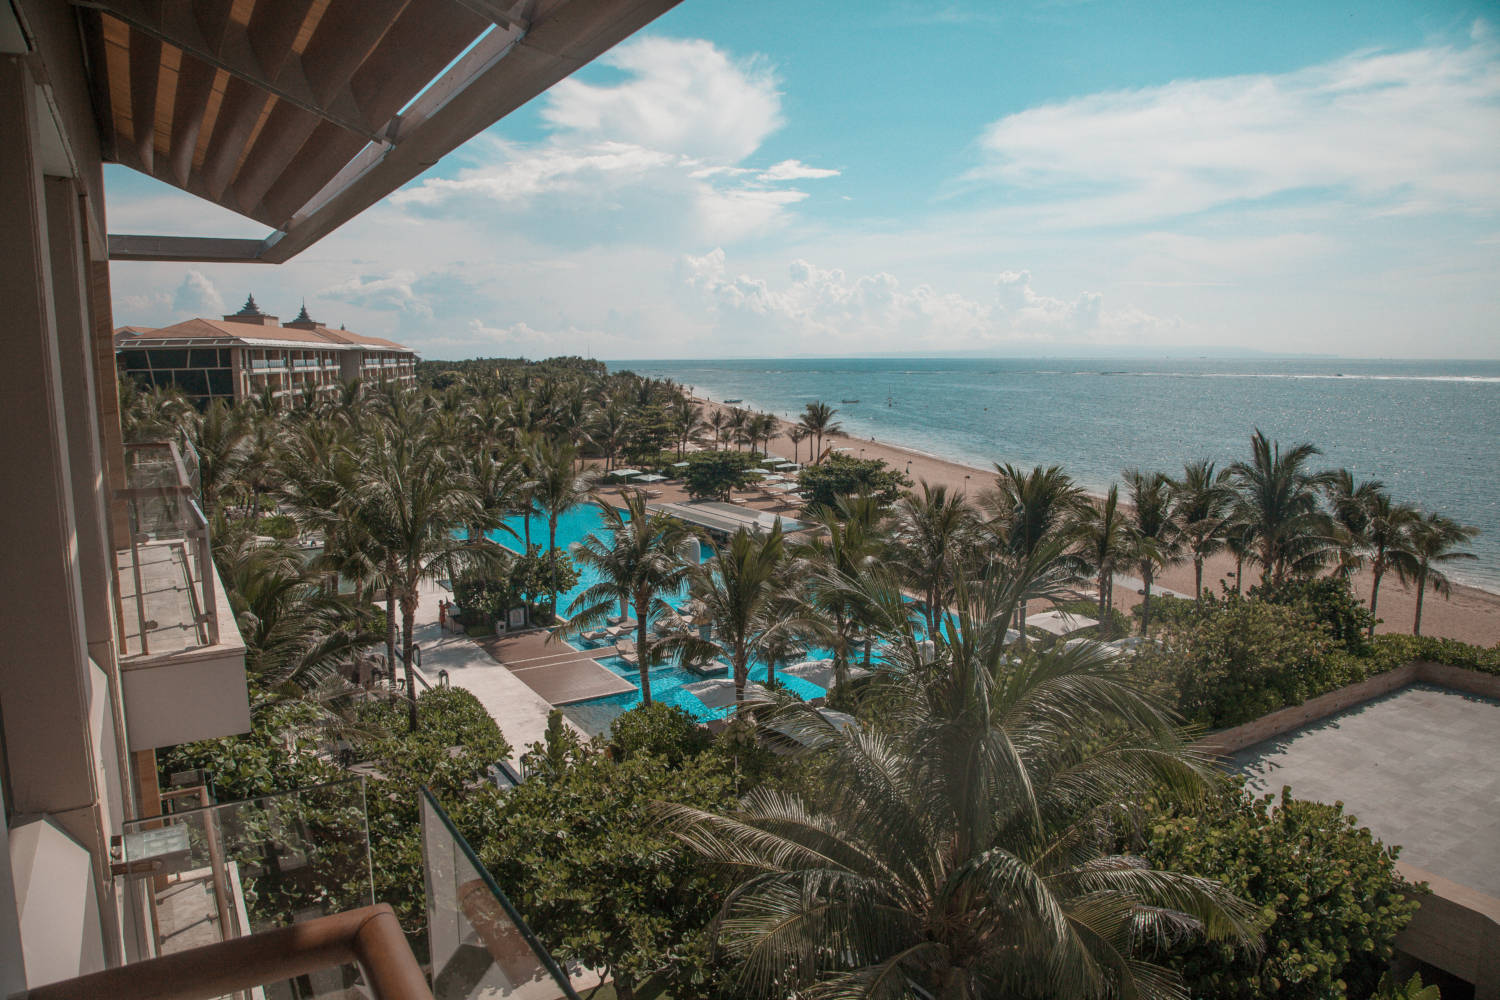 The Most Luxurious Resort In Nusa Dua For Couples: The Mulia Bali